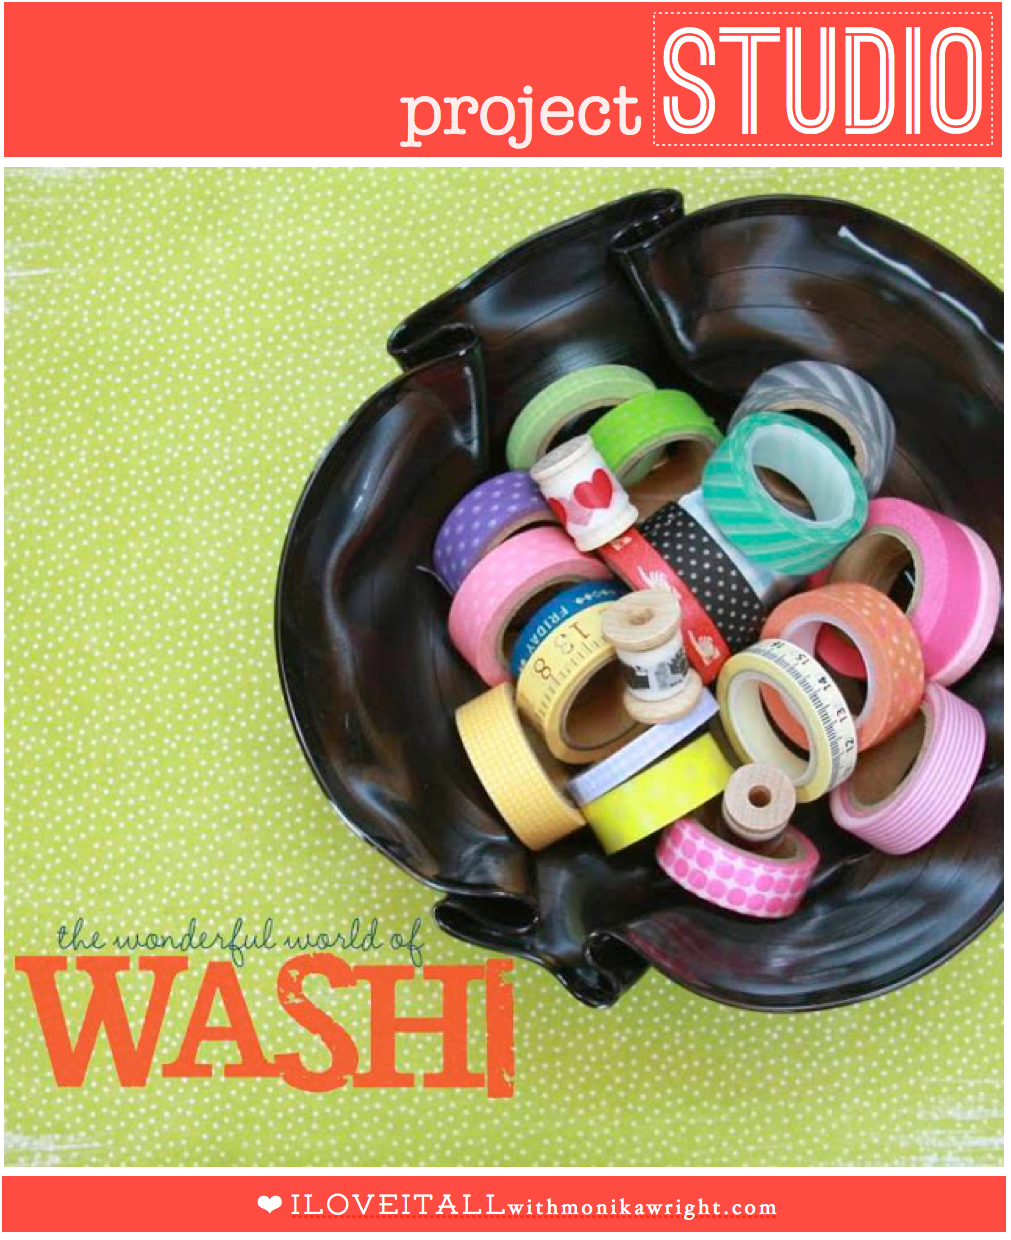 projectSTUDIO washi tape storage | iloveitallwithmonkawright.com